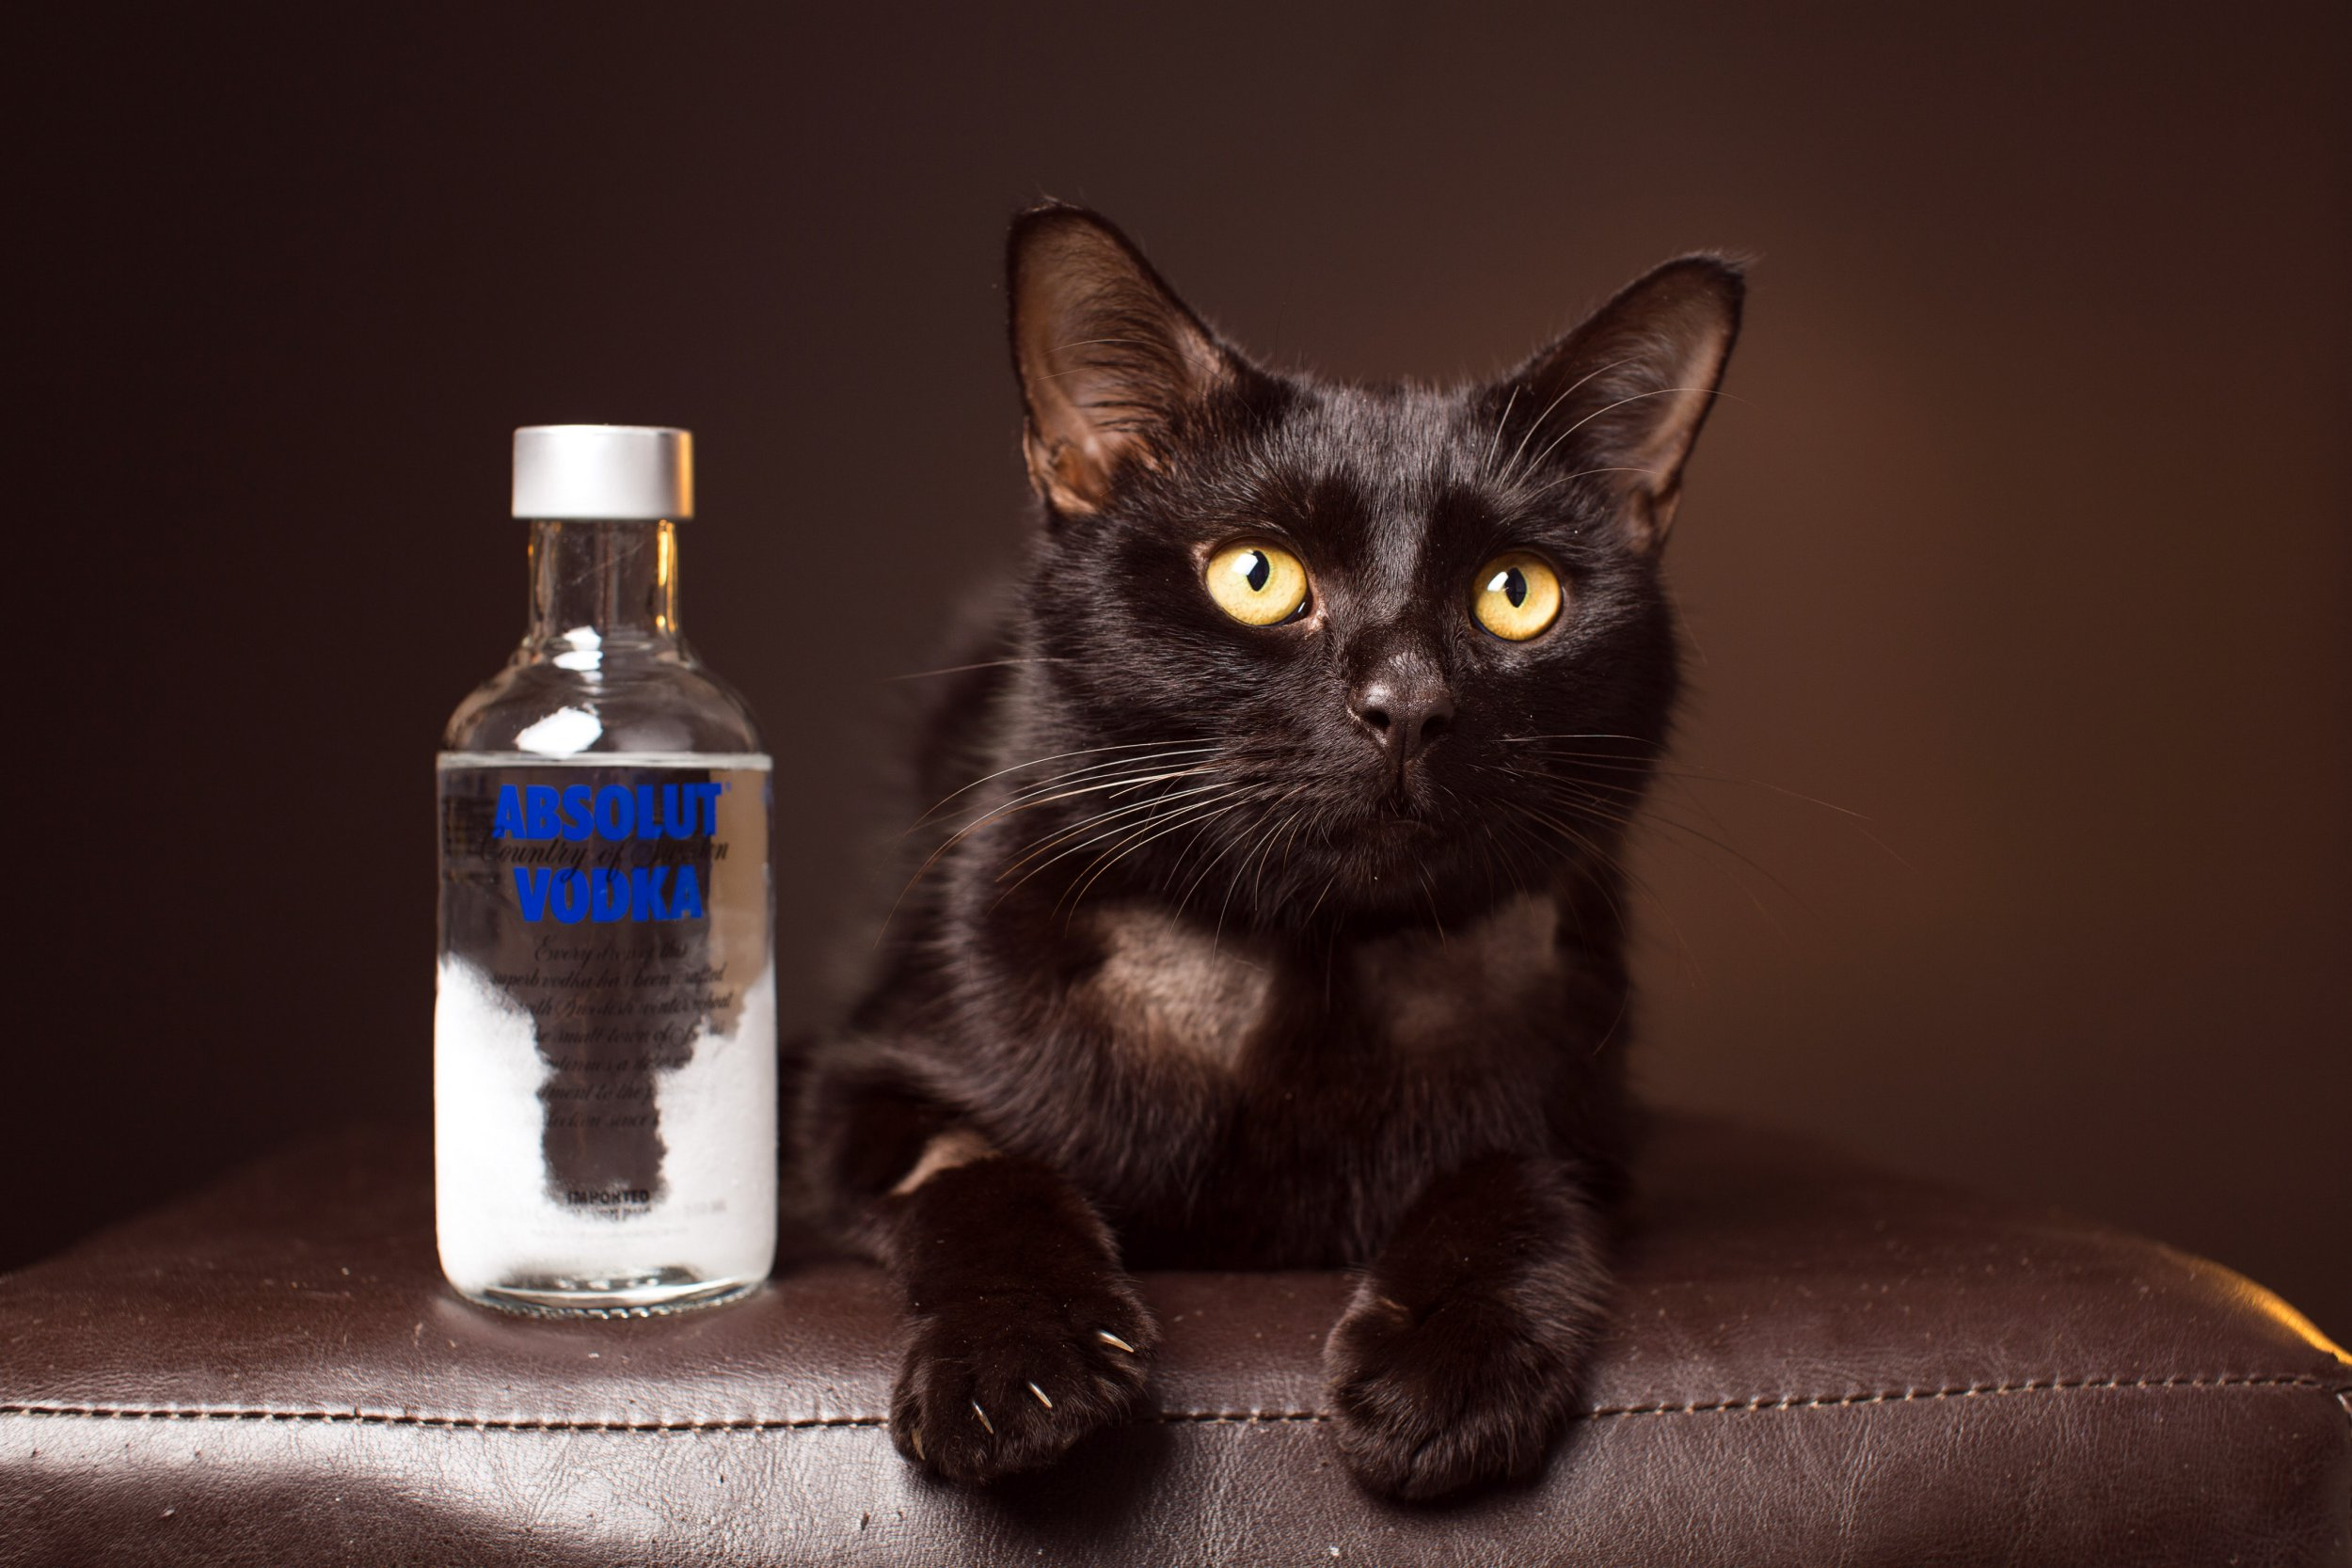 Vets save poisoned cat's life by giving him a bottle of vodka to drink